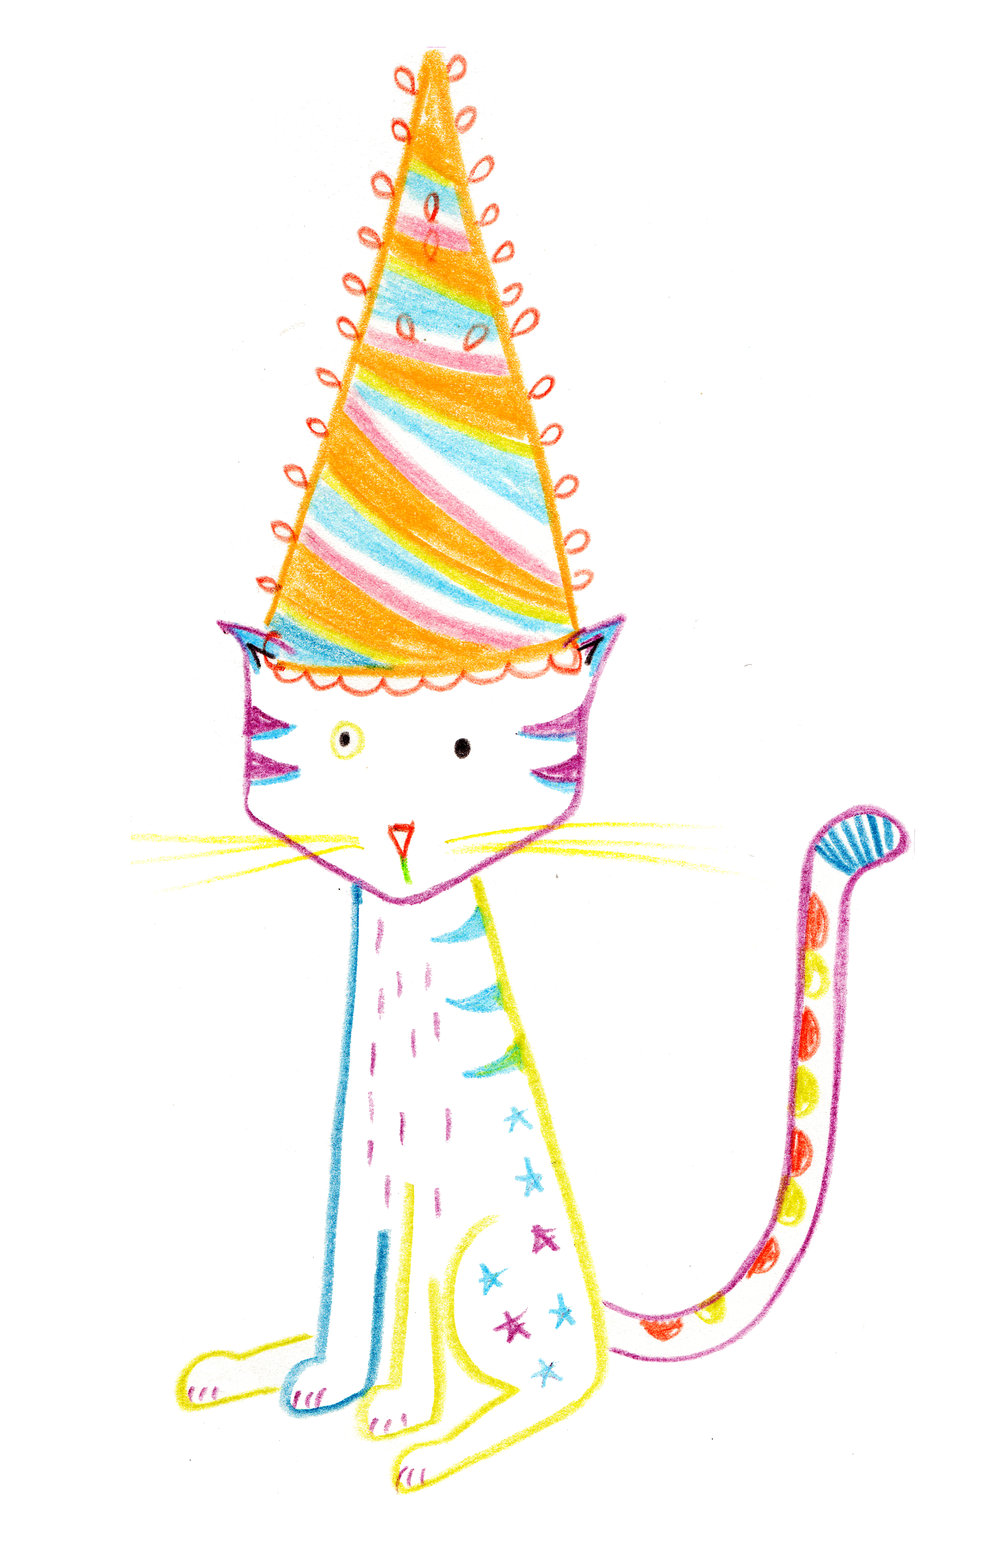 BC's birthday hat Sm.jpg